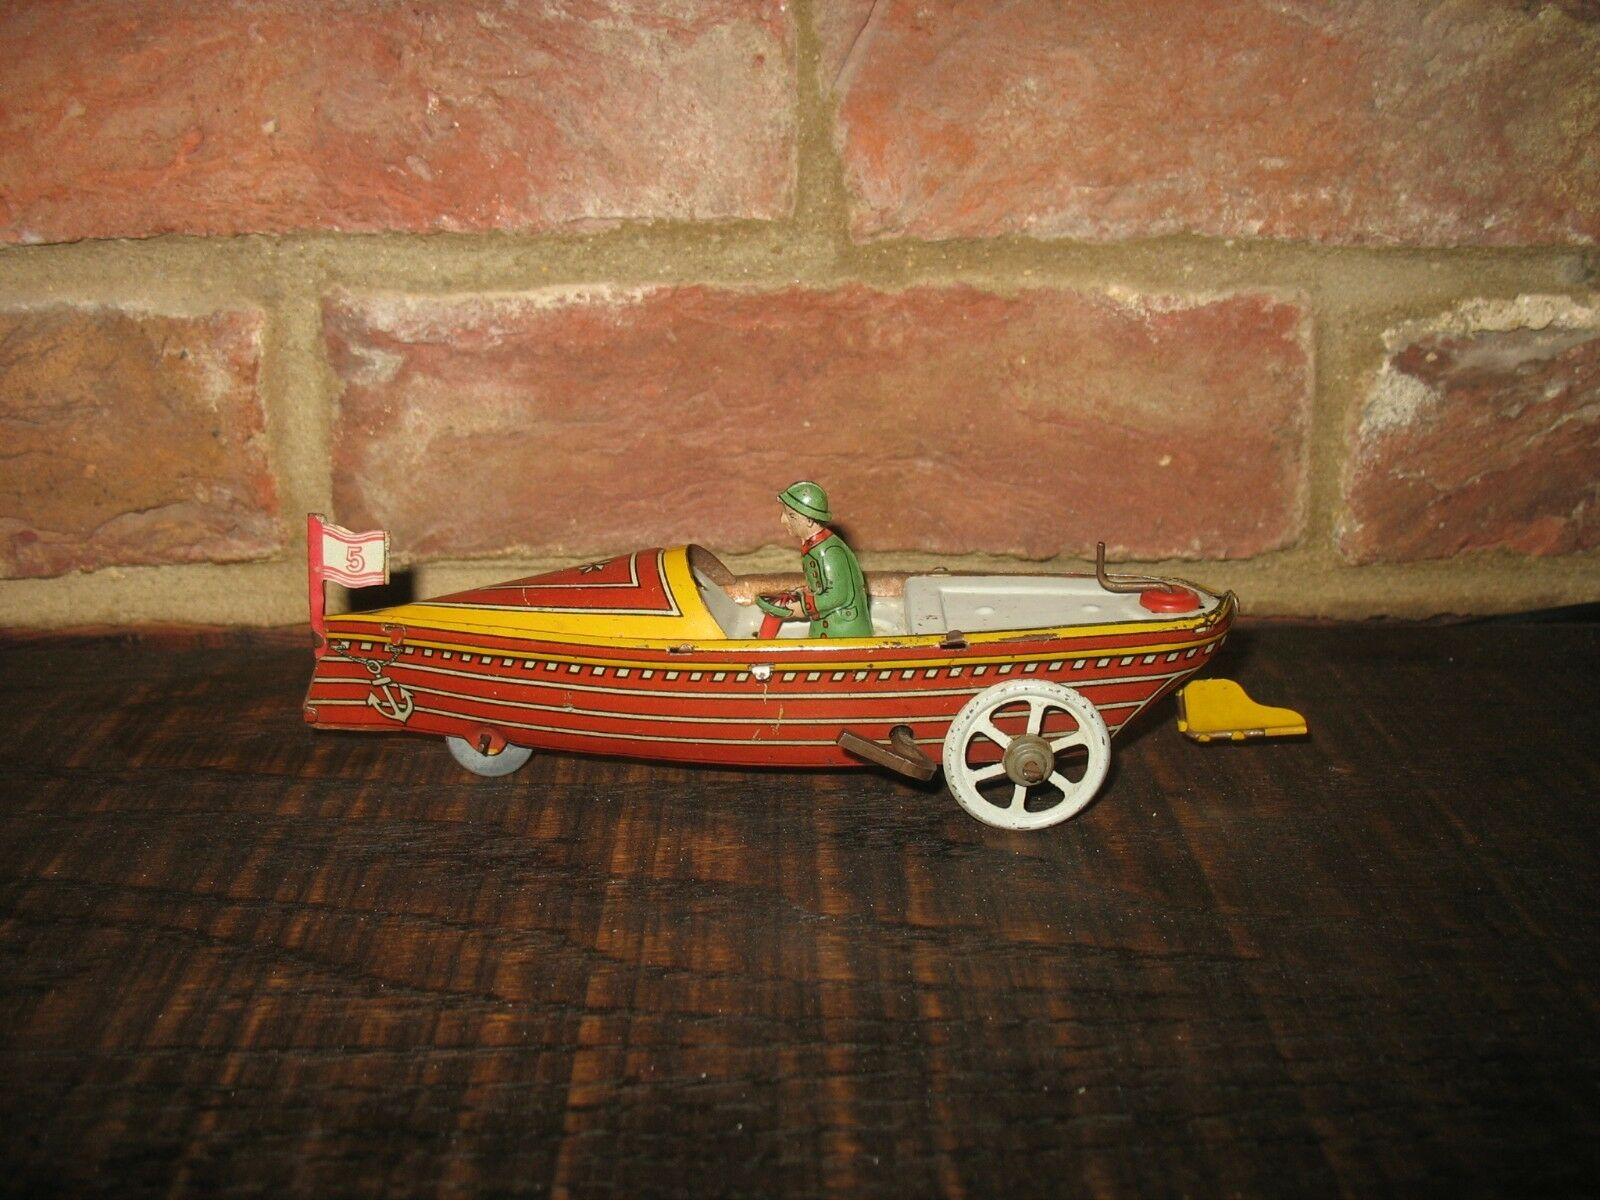 RARE WIND UP FISCHER Corsa Velocità Barca anni 1920 Germania BELLA VINTAGE Tin Penny Toy